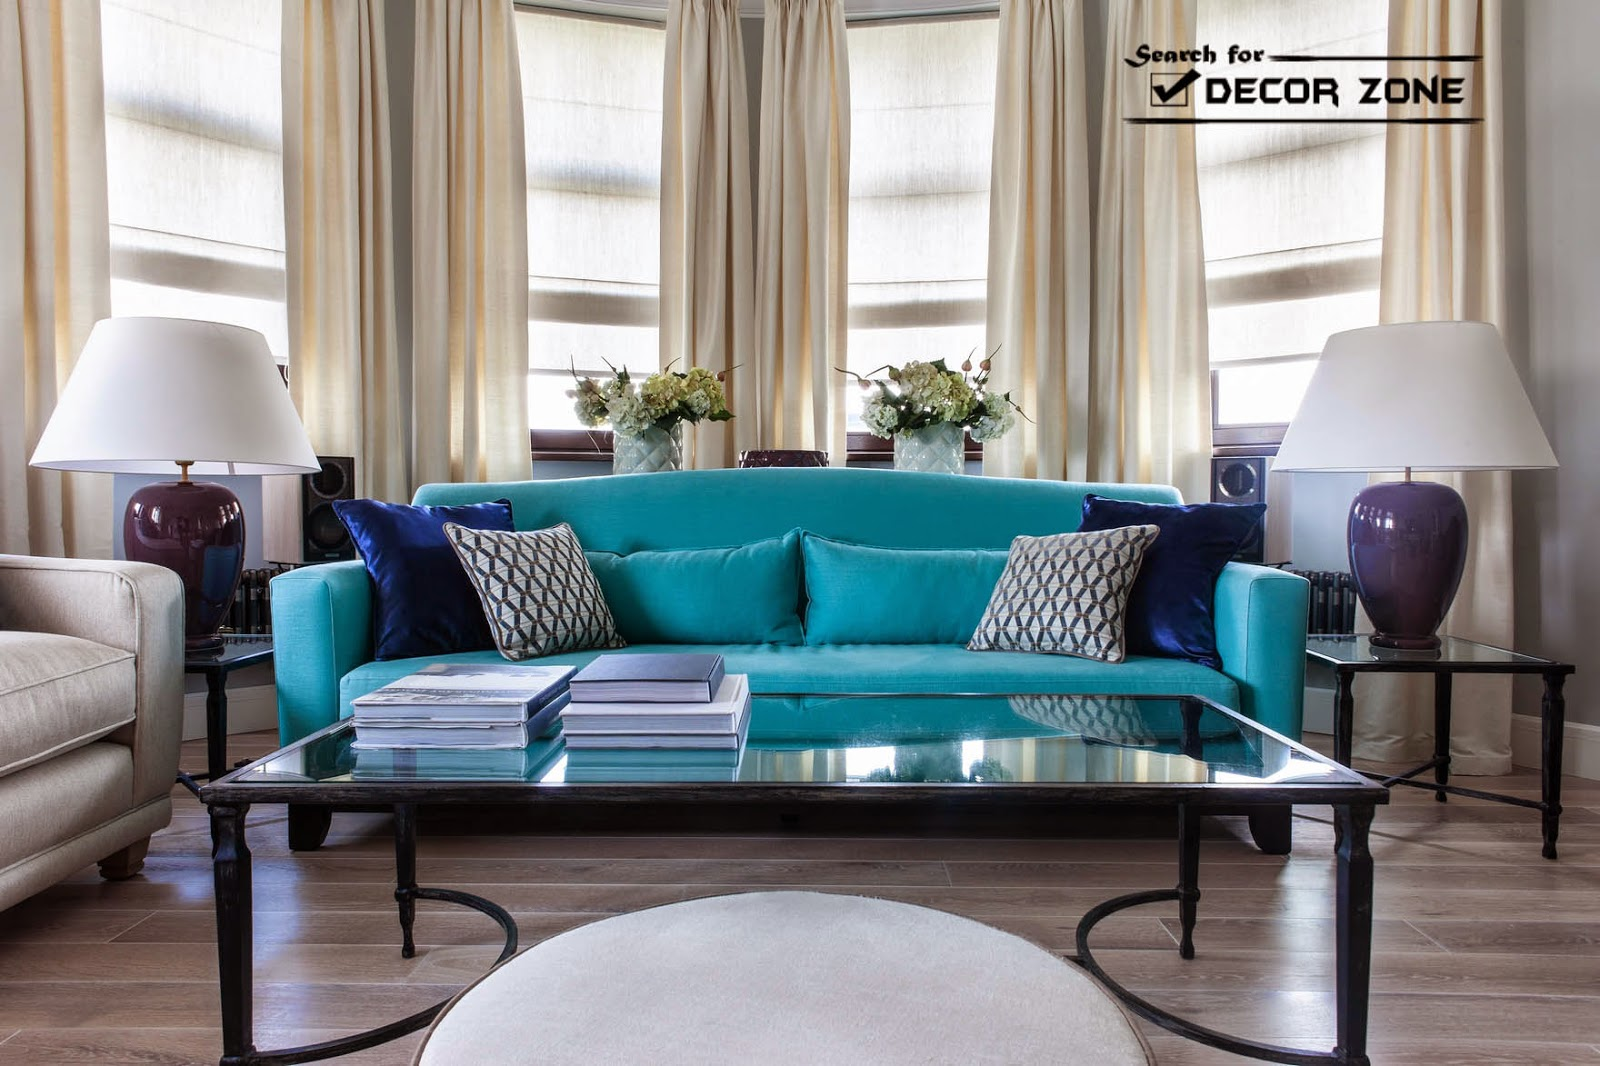 Contemporary Living Room Furniture   Turquoise Sofa And White Chairs